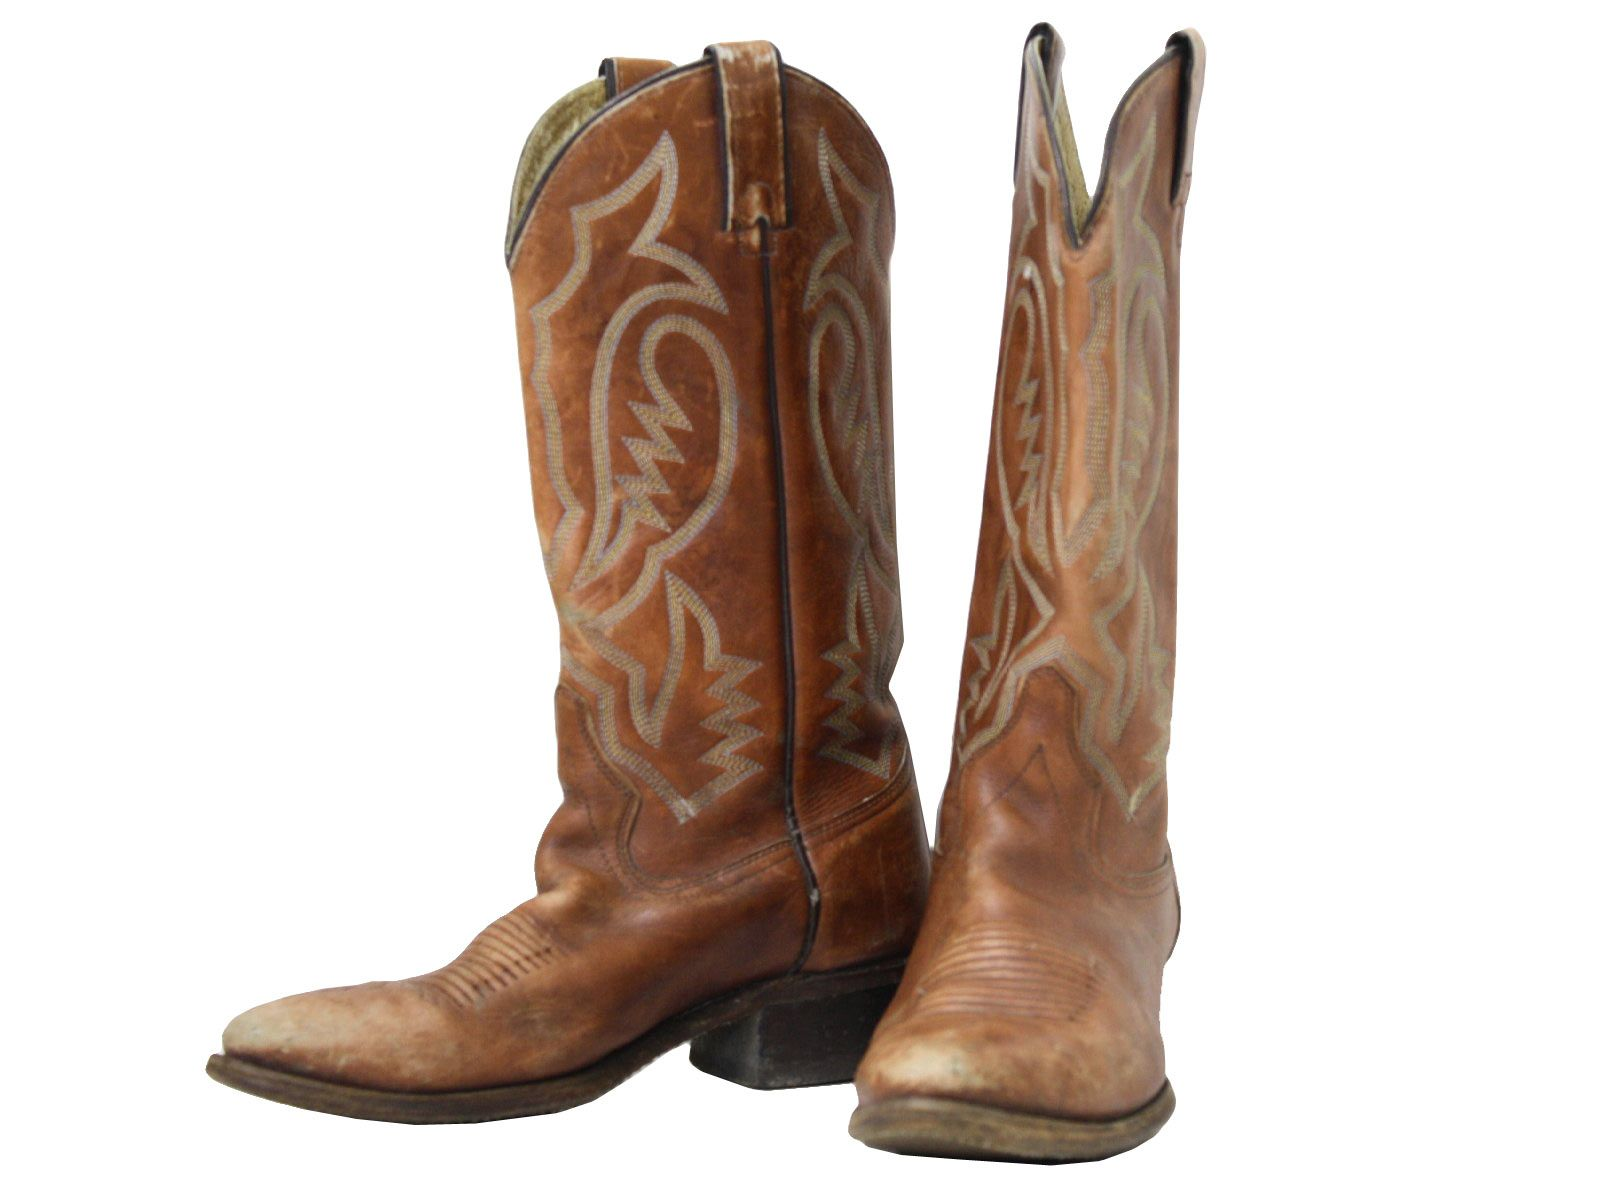 93d7a0b7f16 1980's Texas Mens Shoes - Cowboy Boots in 2019 | Love | Boots, Brown ...